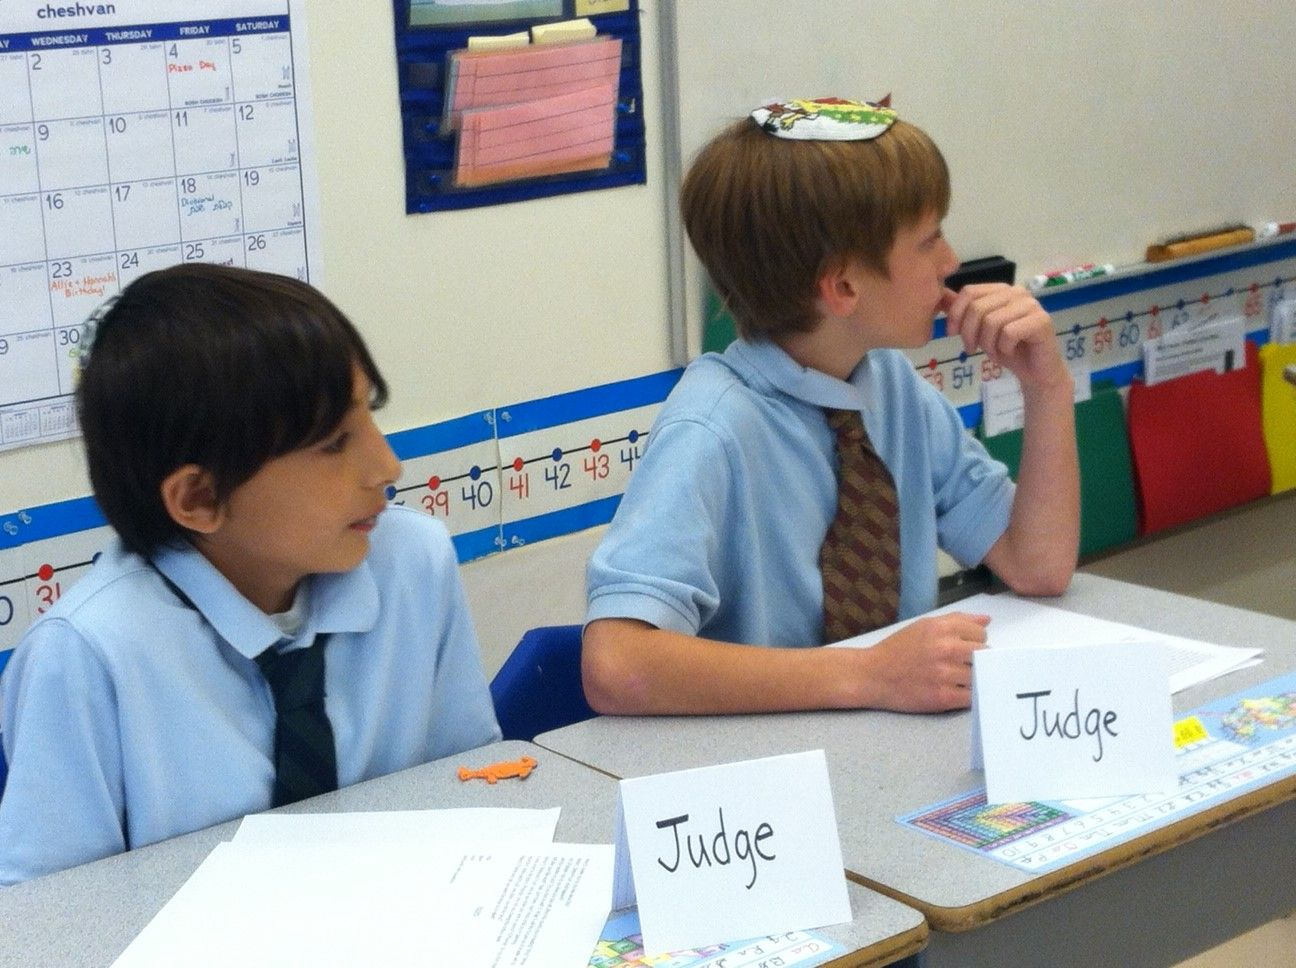 The judges hearing both sides of the argument in the Torah debate